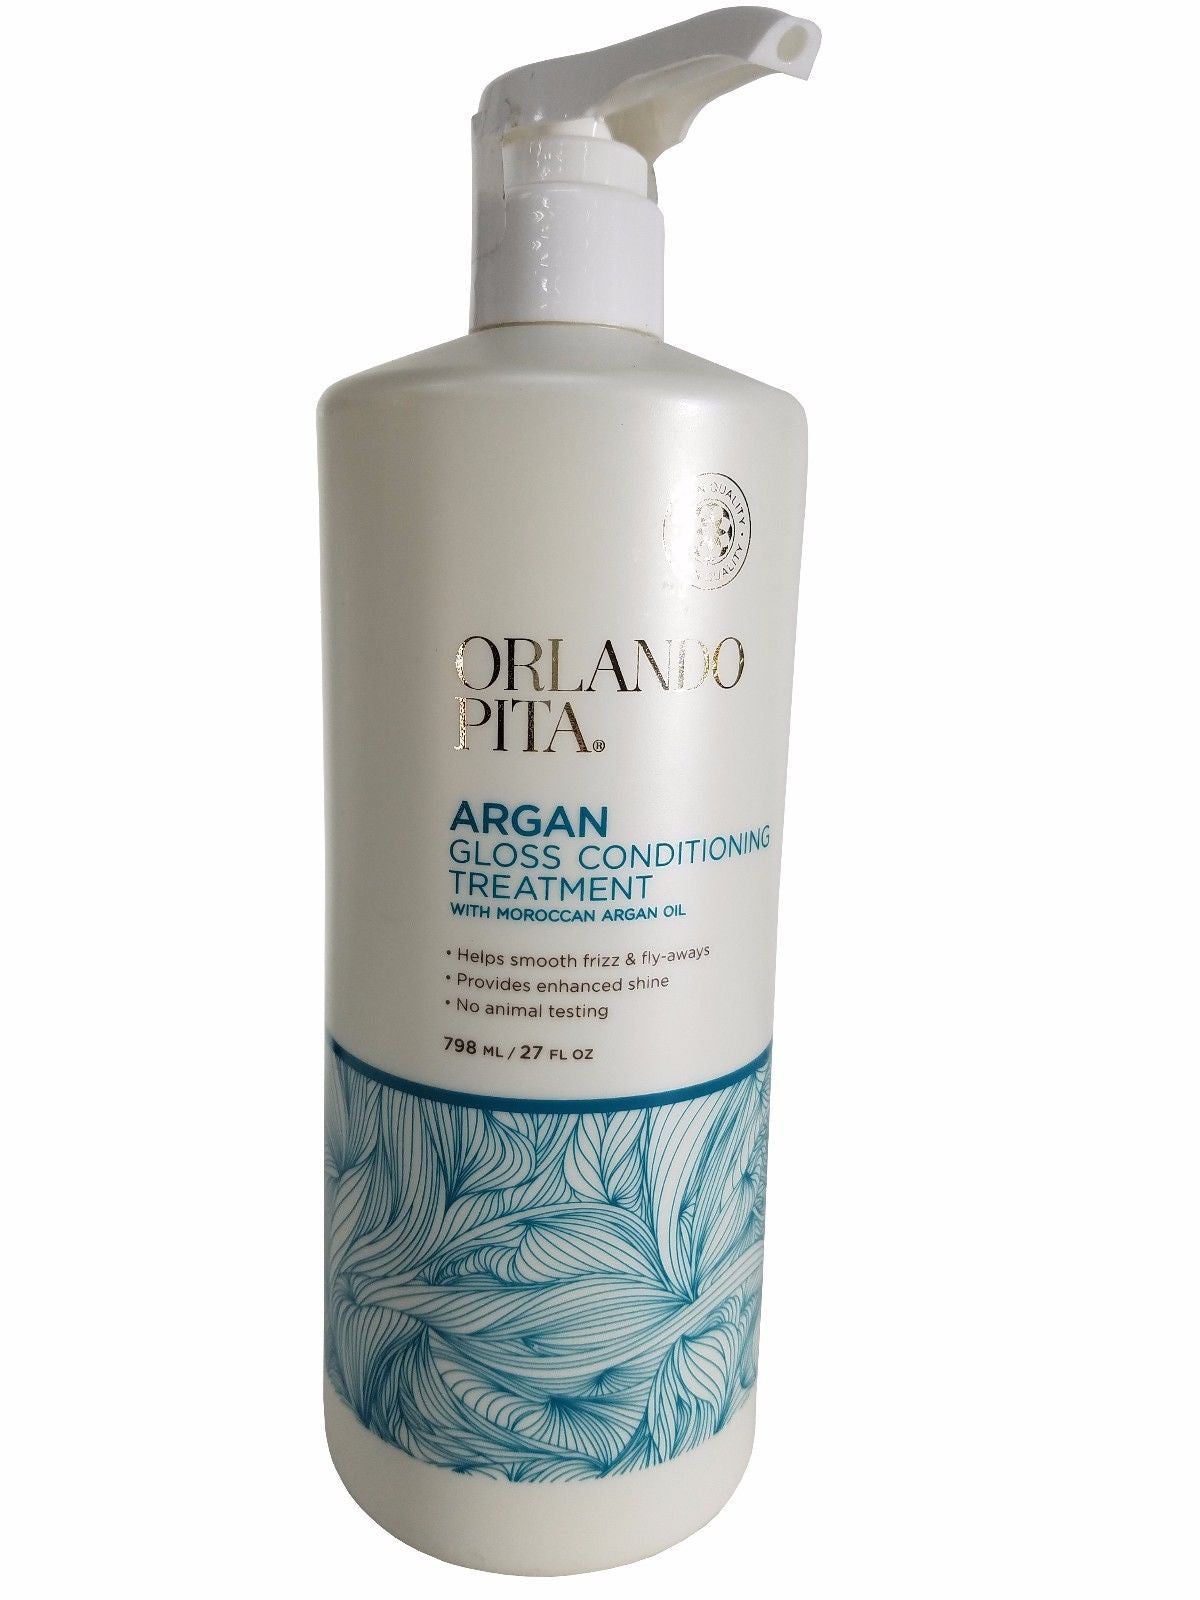 Orlando Pita Argan Gloss Conditioning Treatment with Moroccan Argan Oil 27 fl oz